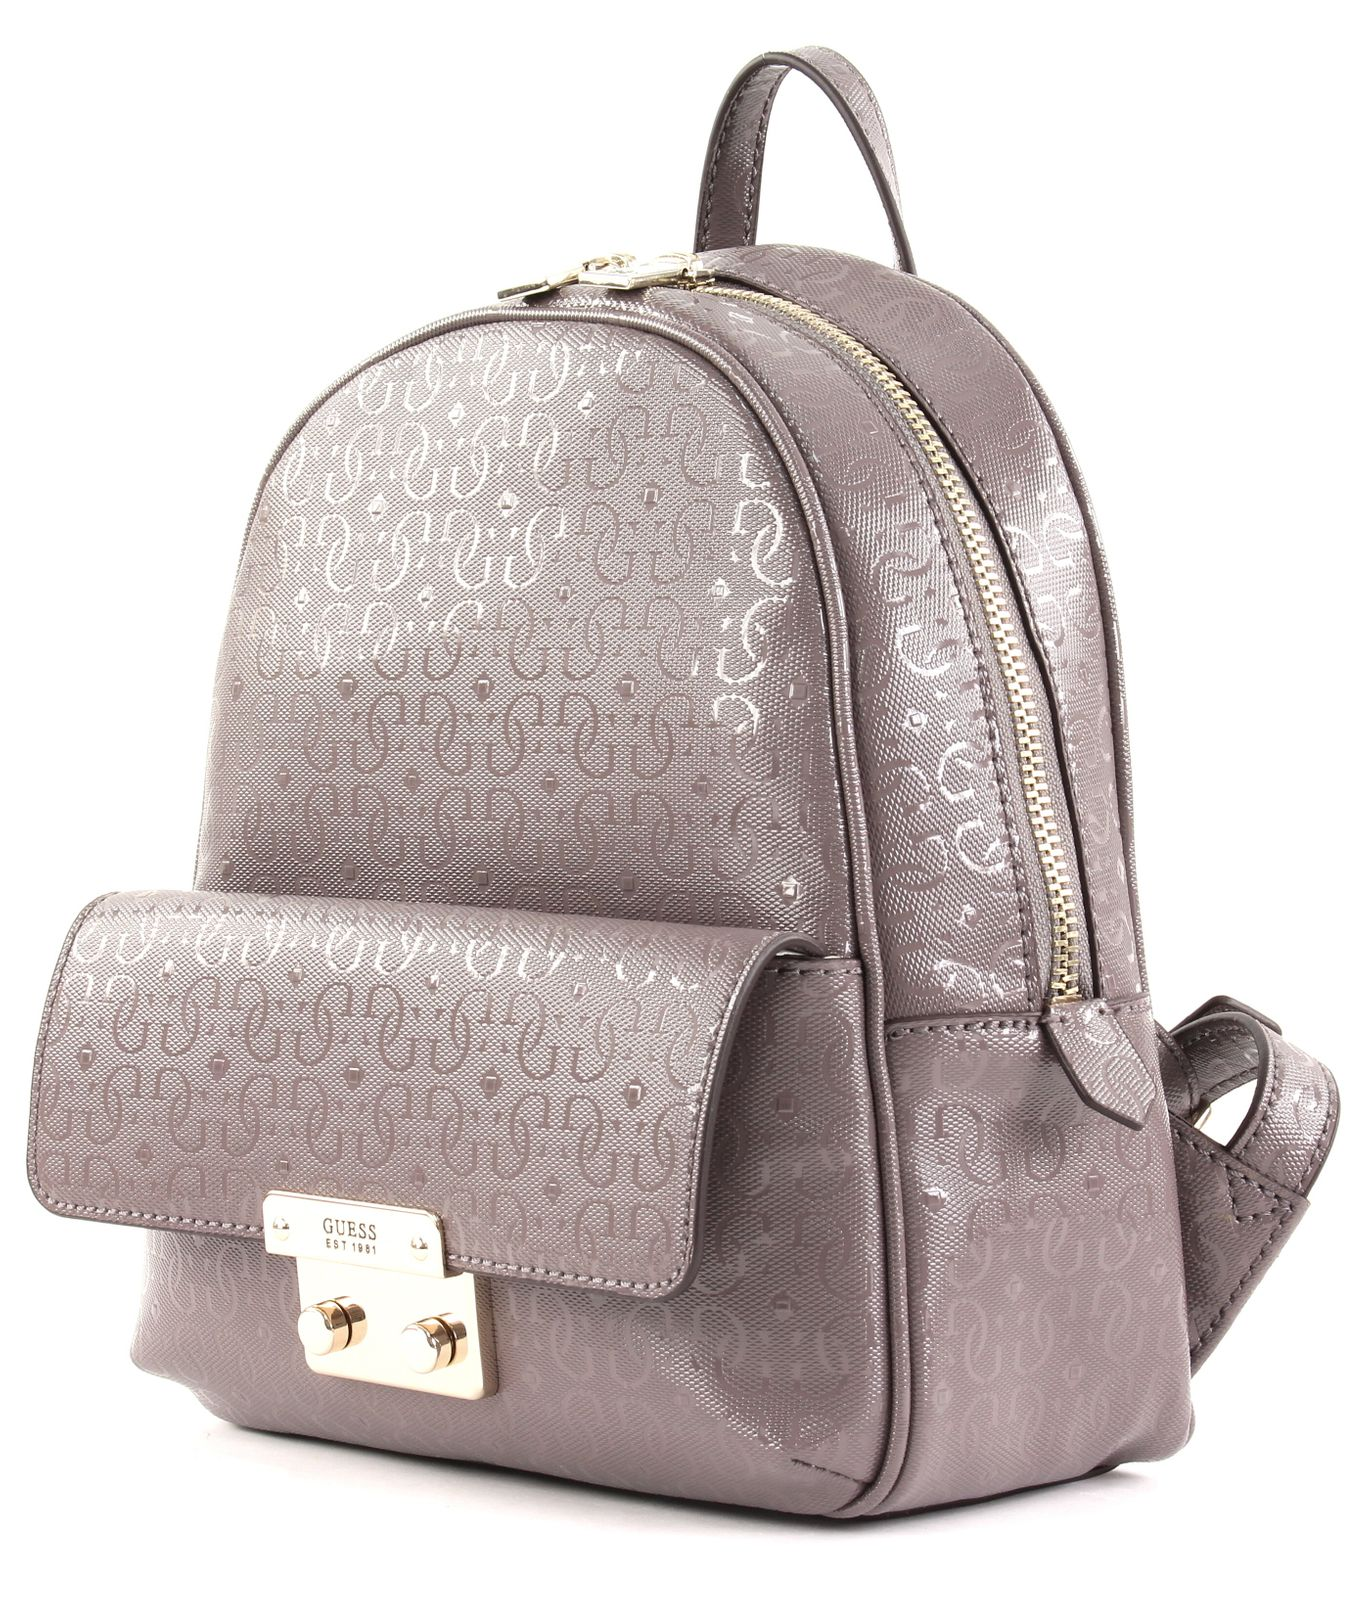 GUESS Tamra Small Backpack Taupe d3d6665dea